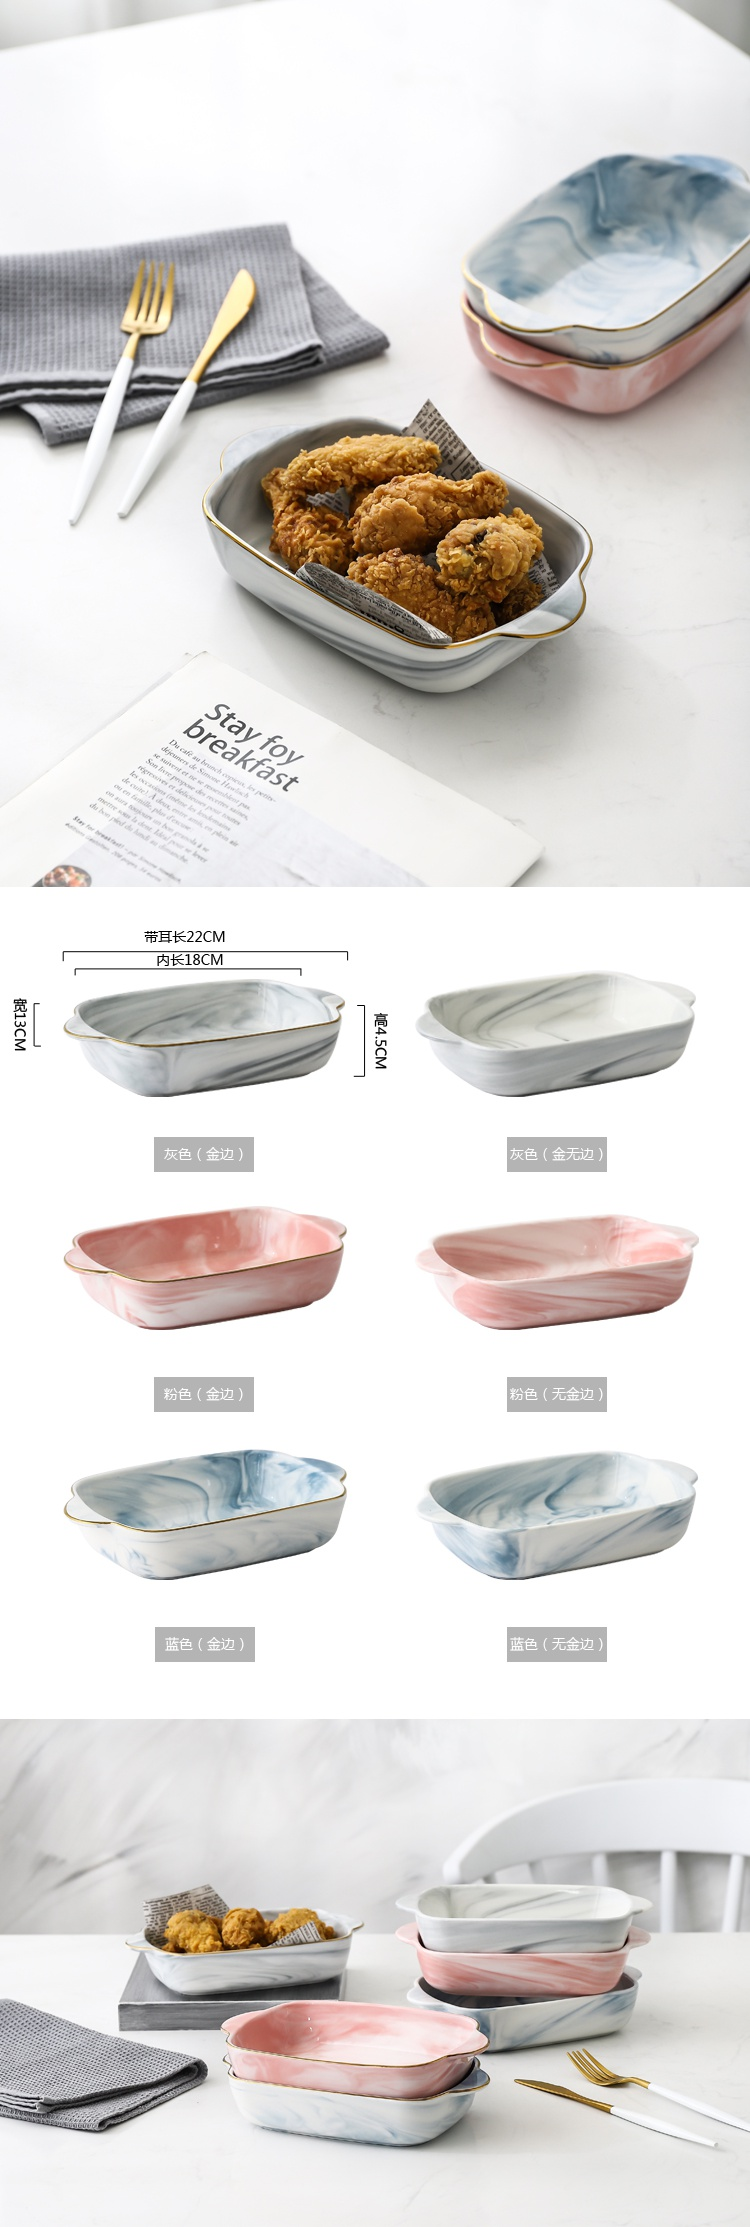 Marble ceramic deep expressions using western dishes Nordic creative household ears baked cheese paella pan of bread and butter